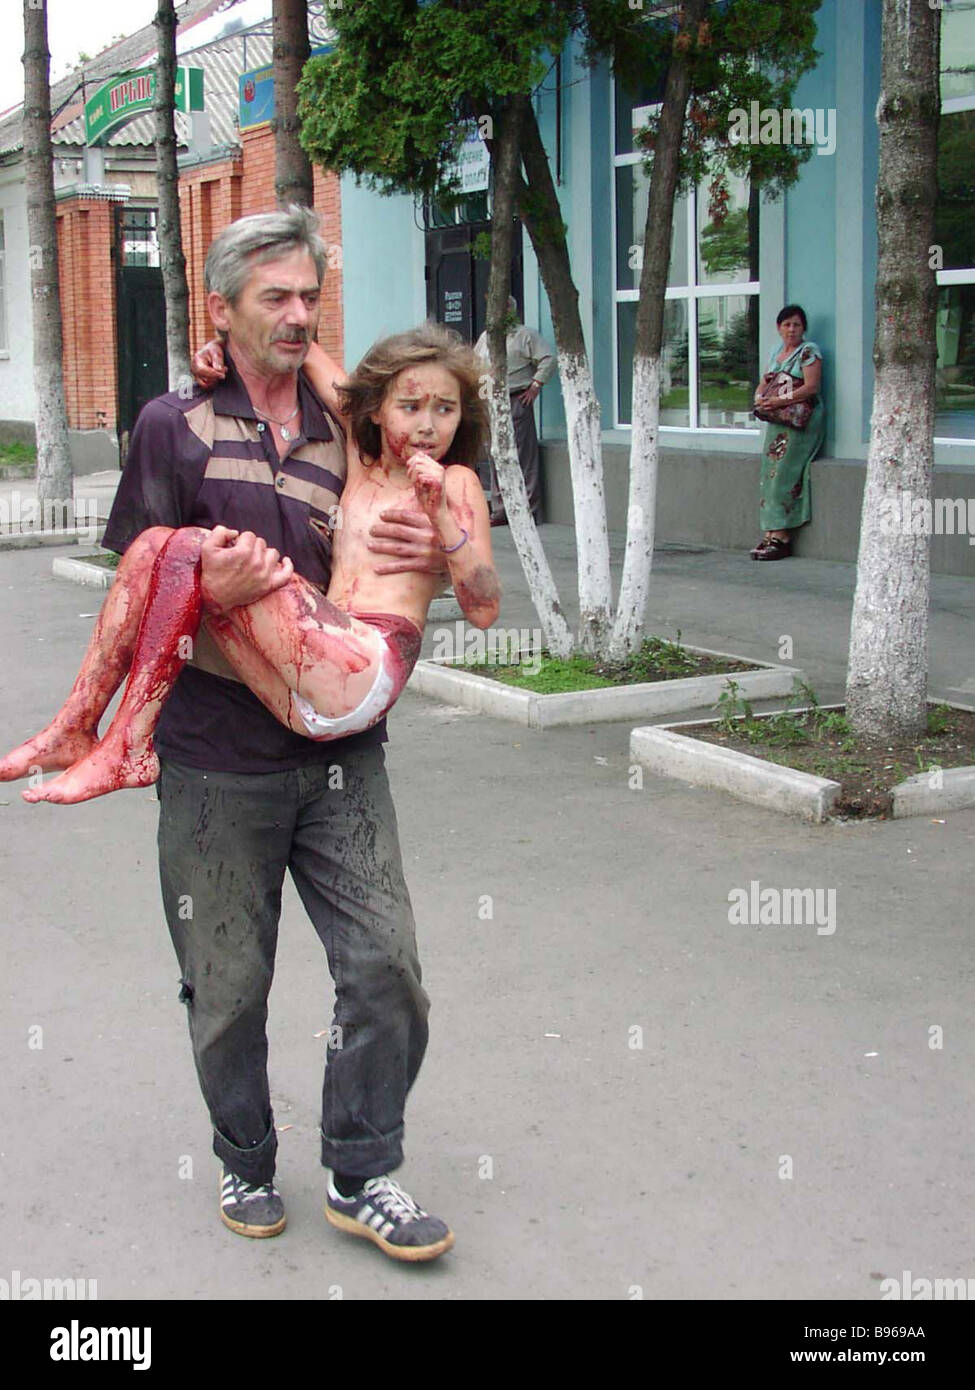 The authorities saved these hostages who suffered during the terrorist act in Beslan - Stock Image